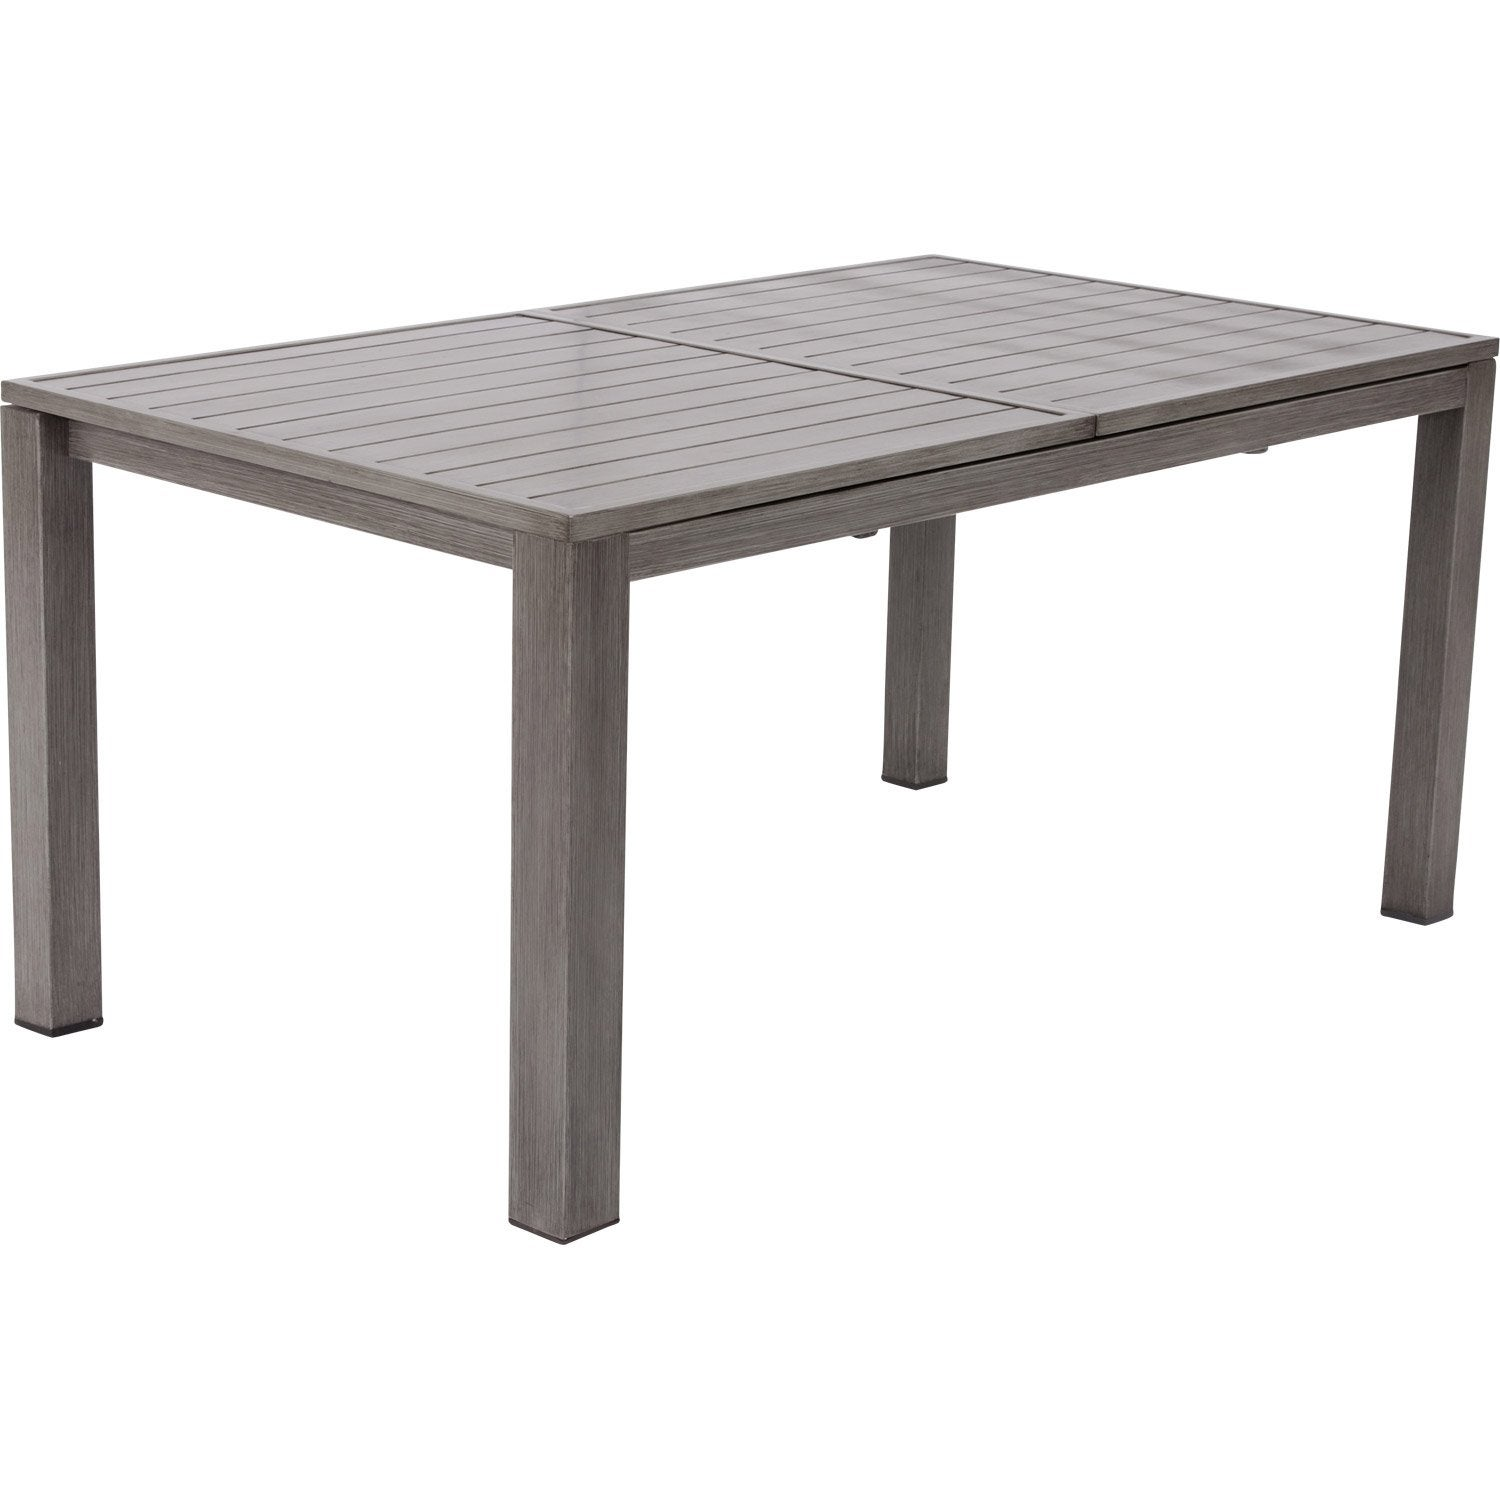 Table de jardin naterial antibes rectangulaire gris look - Table de jardin extensible imitation bois ...